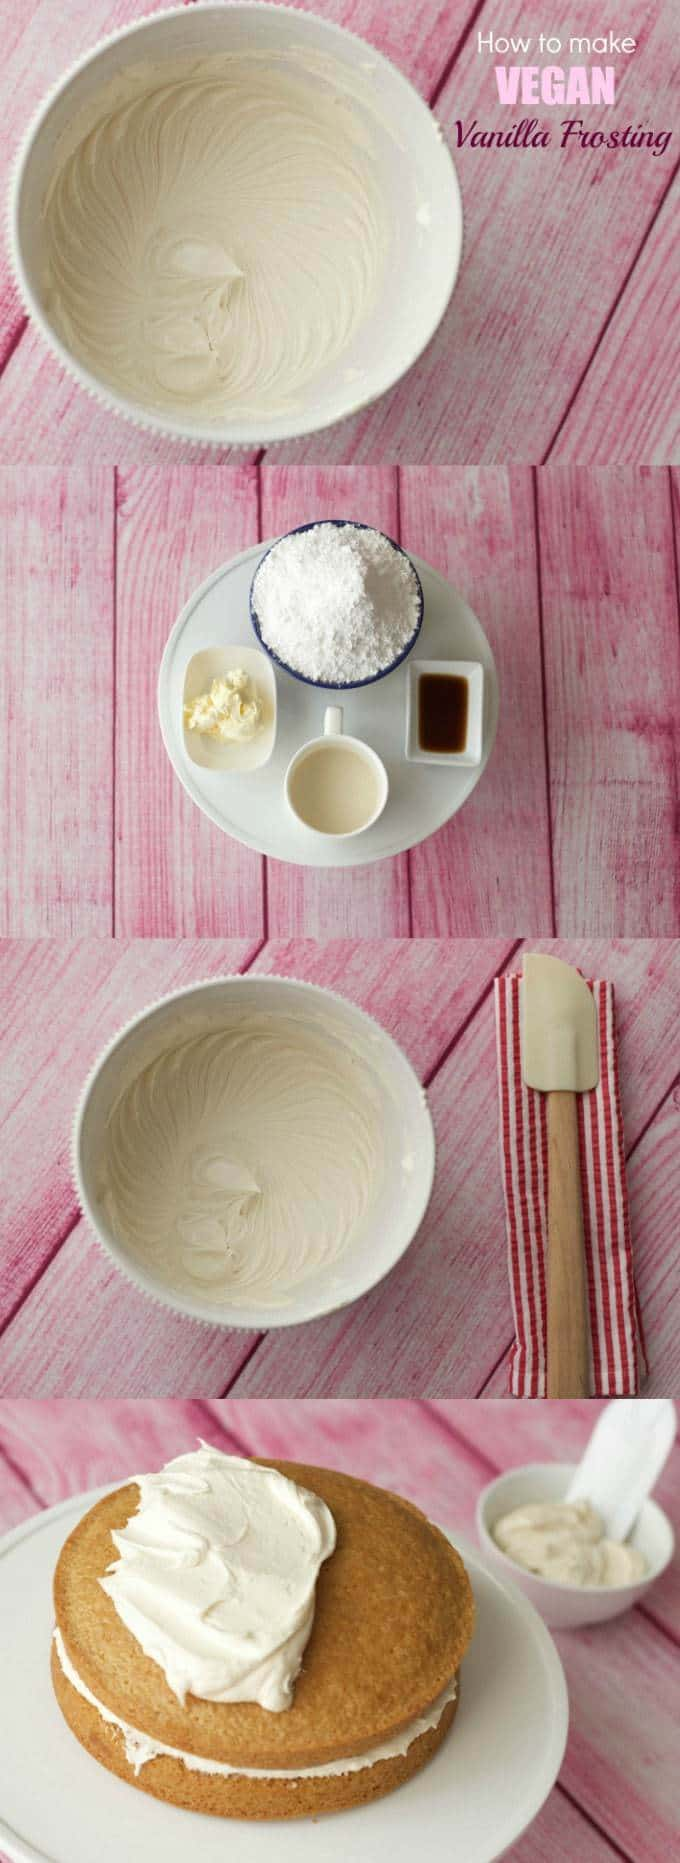 This vegan vanilla frosting is smooth, creamy and delicious! Easy 4-ingredient recipe, ideal for use on cakes, cupcakes and cookies! | lovingitvegan.com